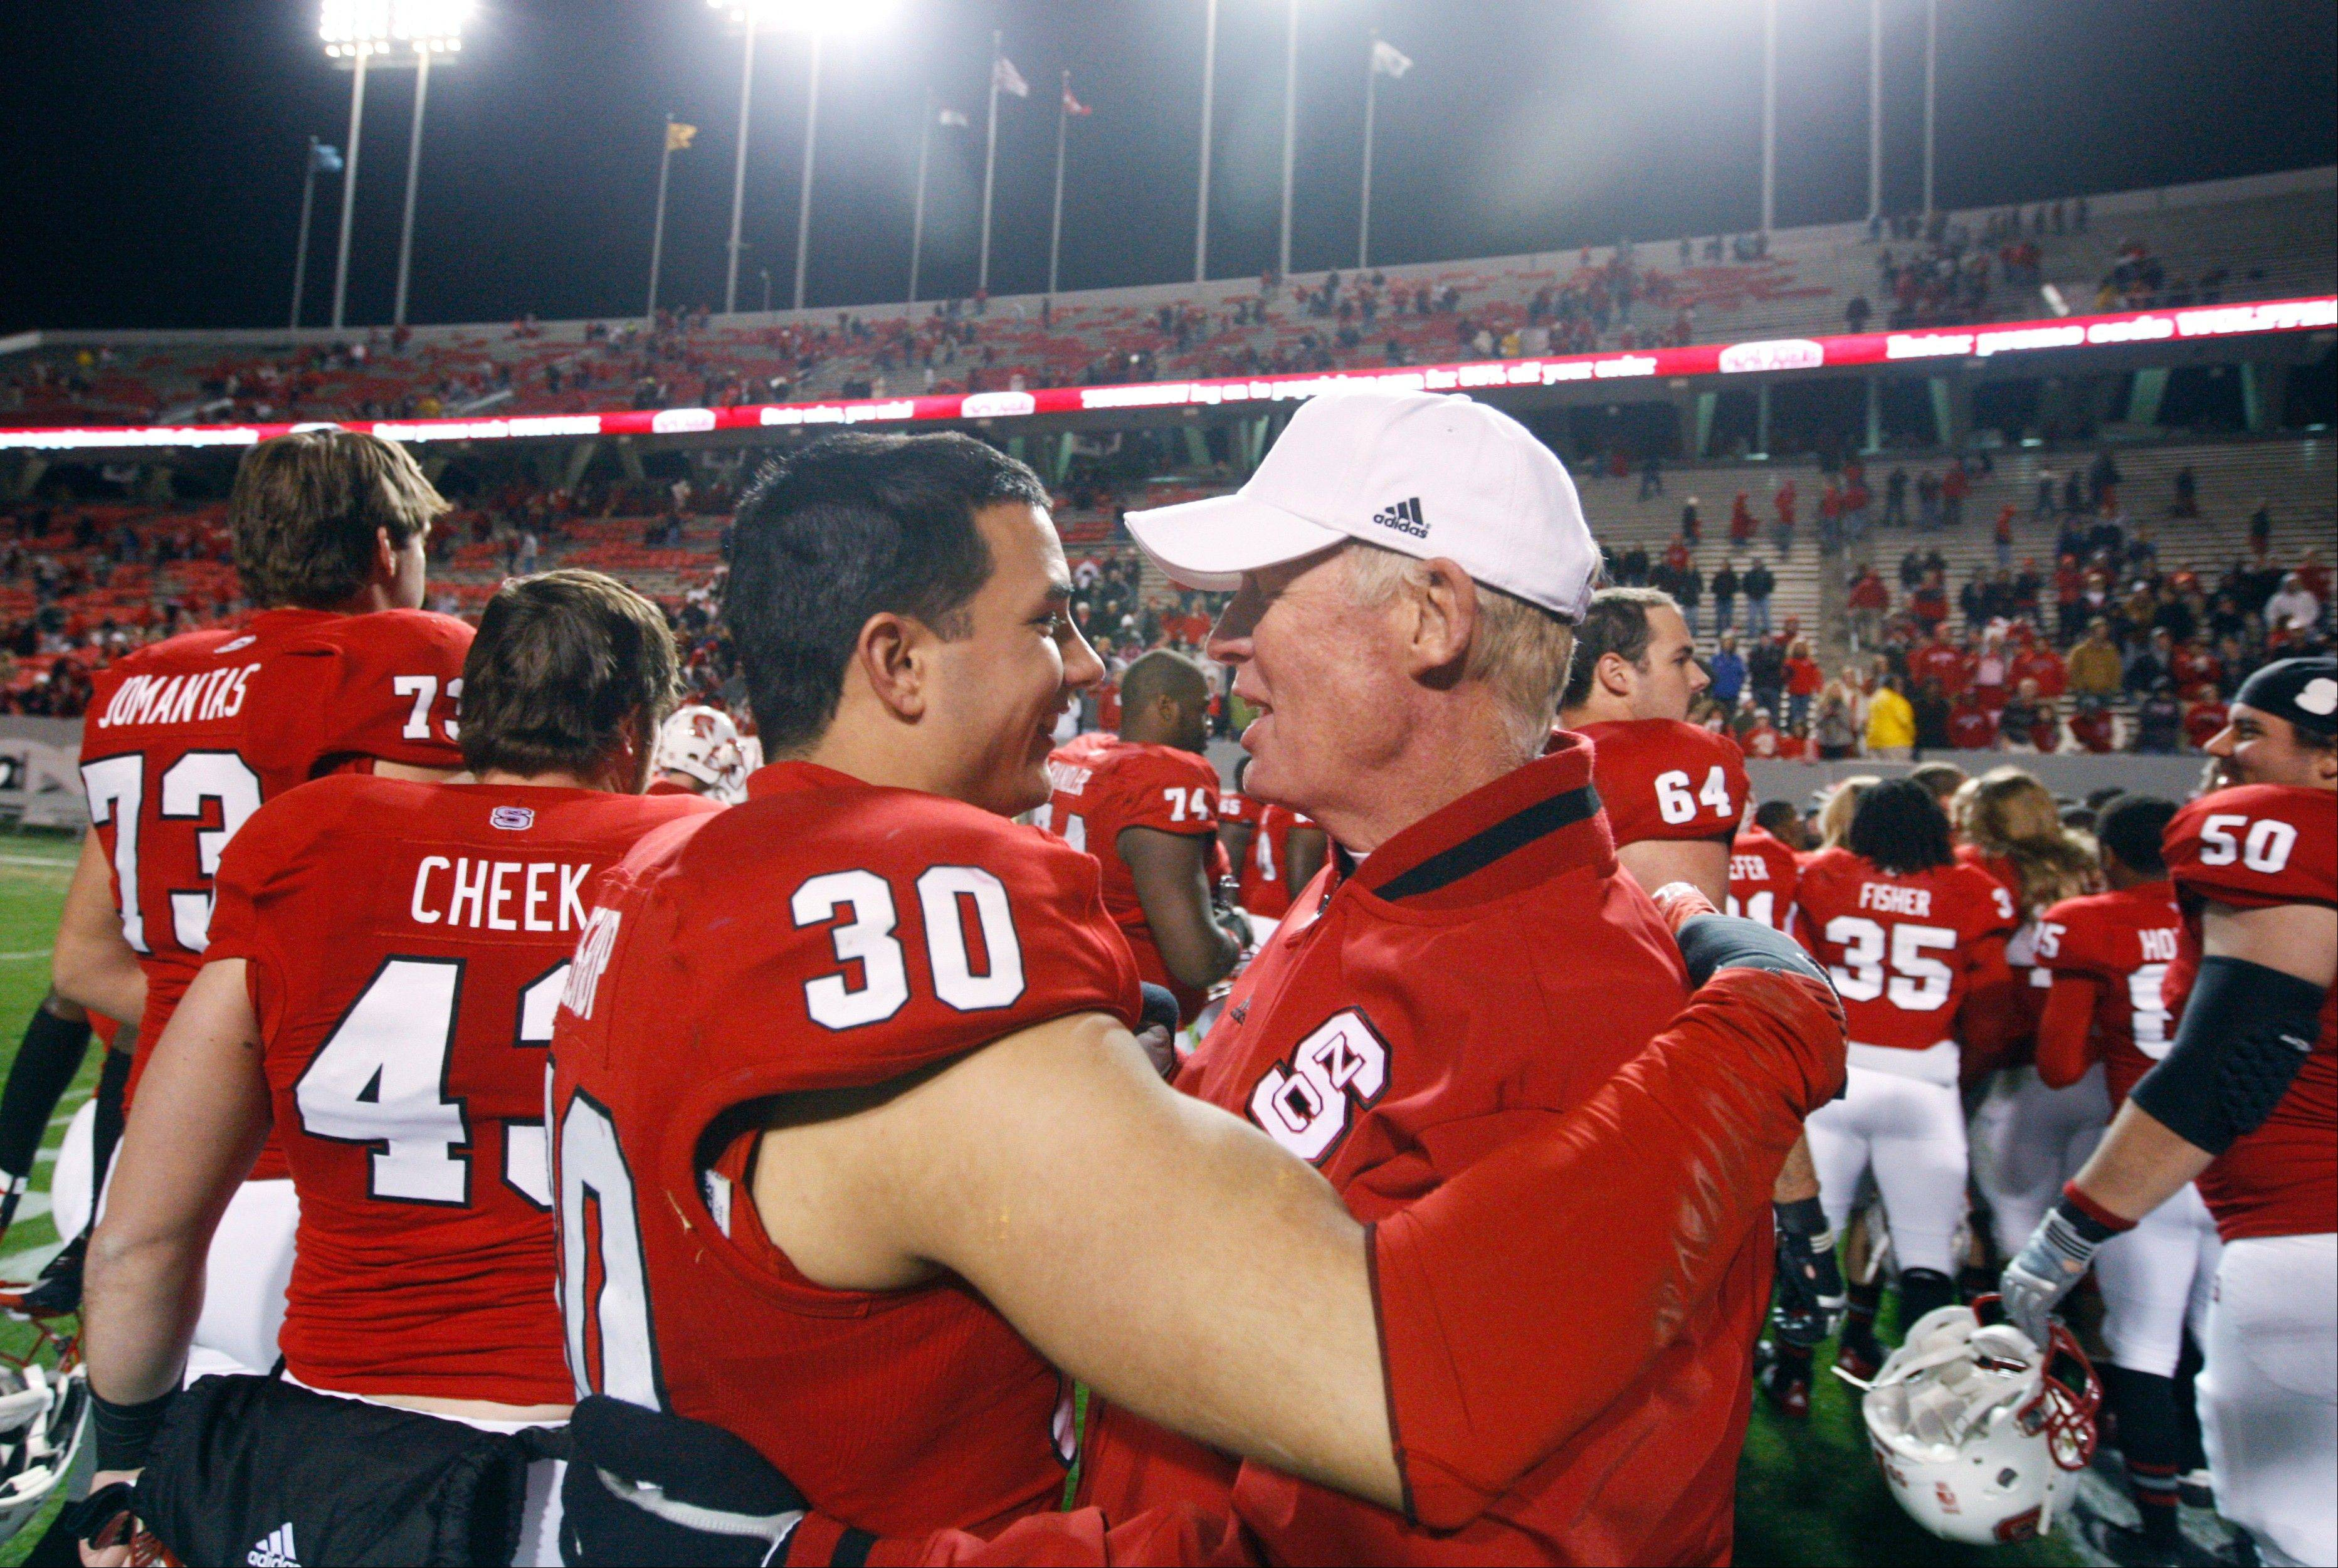 North Carolina State coach Tom O�Brien hugs senior Brandan Bishop after the team�s 27-10 victory over Boston College on Saturday. O�Brien was fired Sunday.